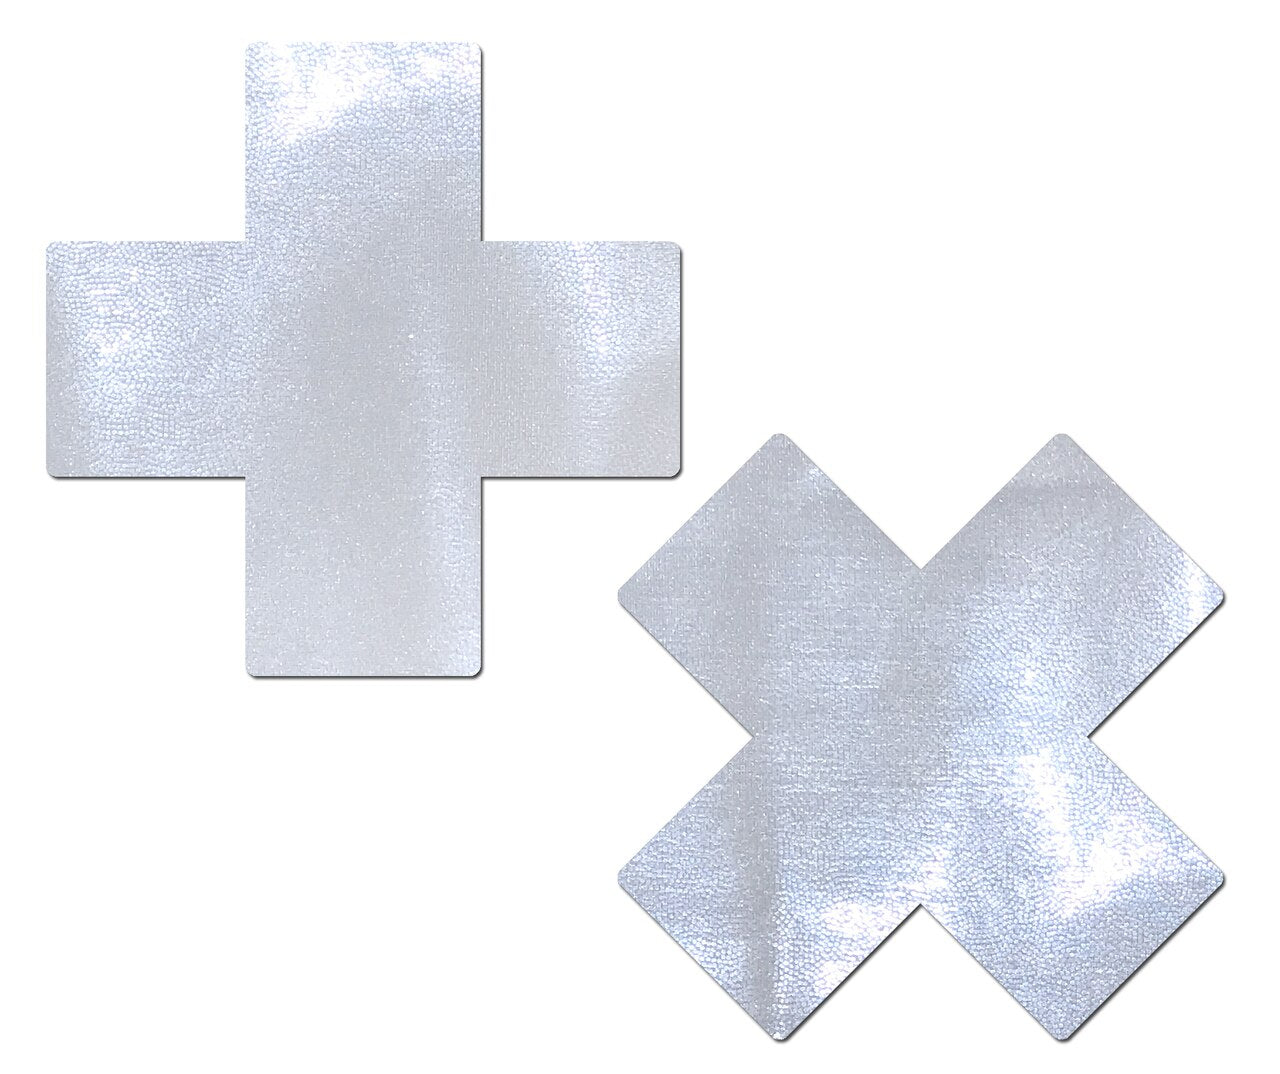 Plus X: Liquid White Cross